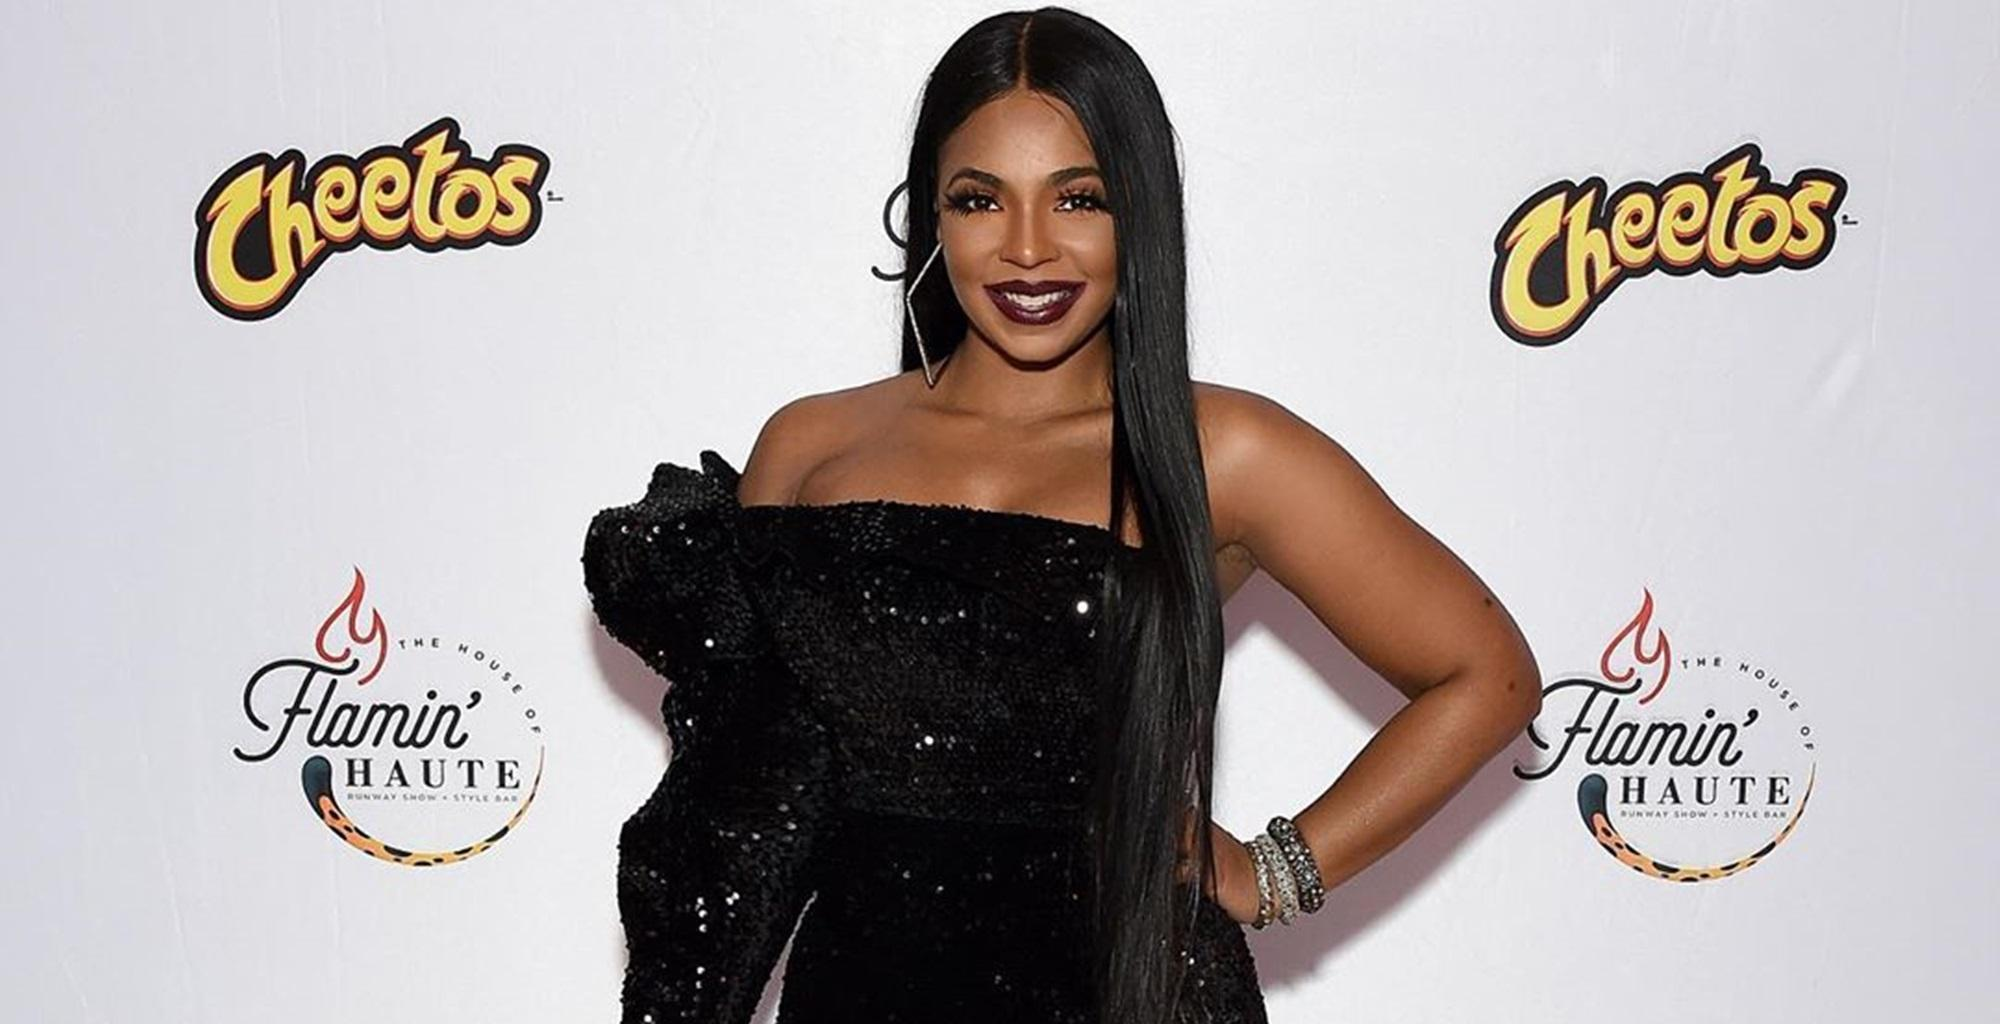 Ashanti Leaves Little To The Imagination As She Plays On A Bed In New Photos -- Diva Looks So Good That Fans Are Now Bashing Nelly For Letting Her Go